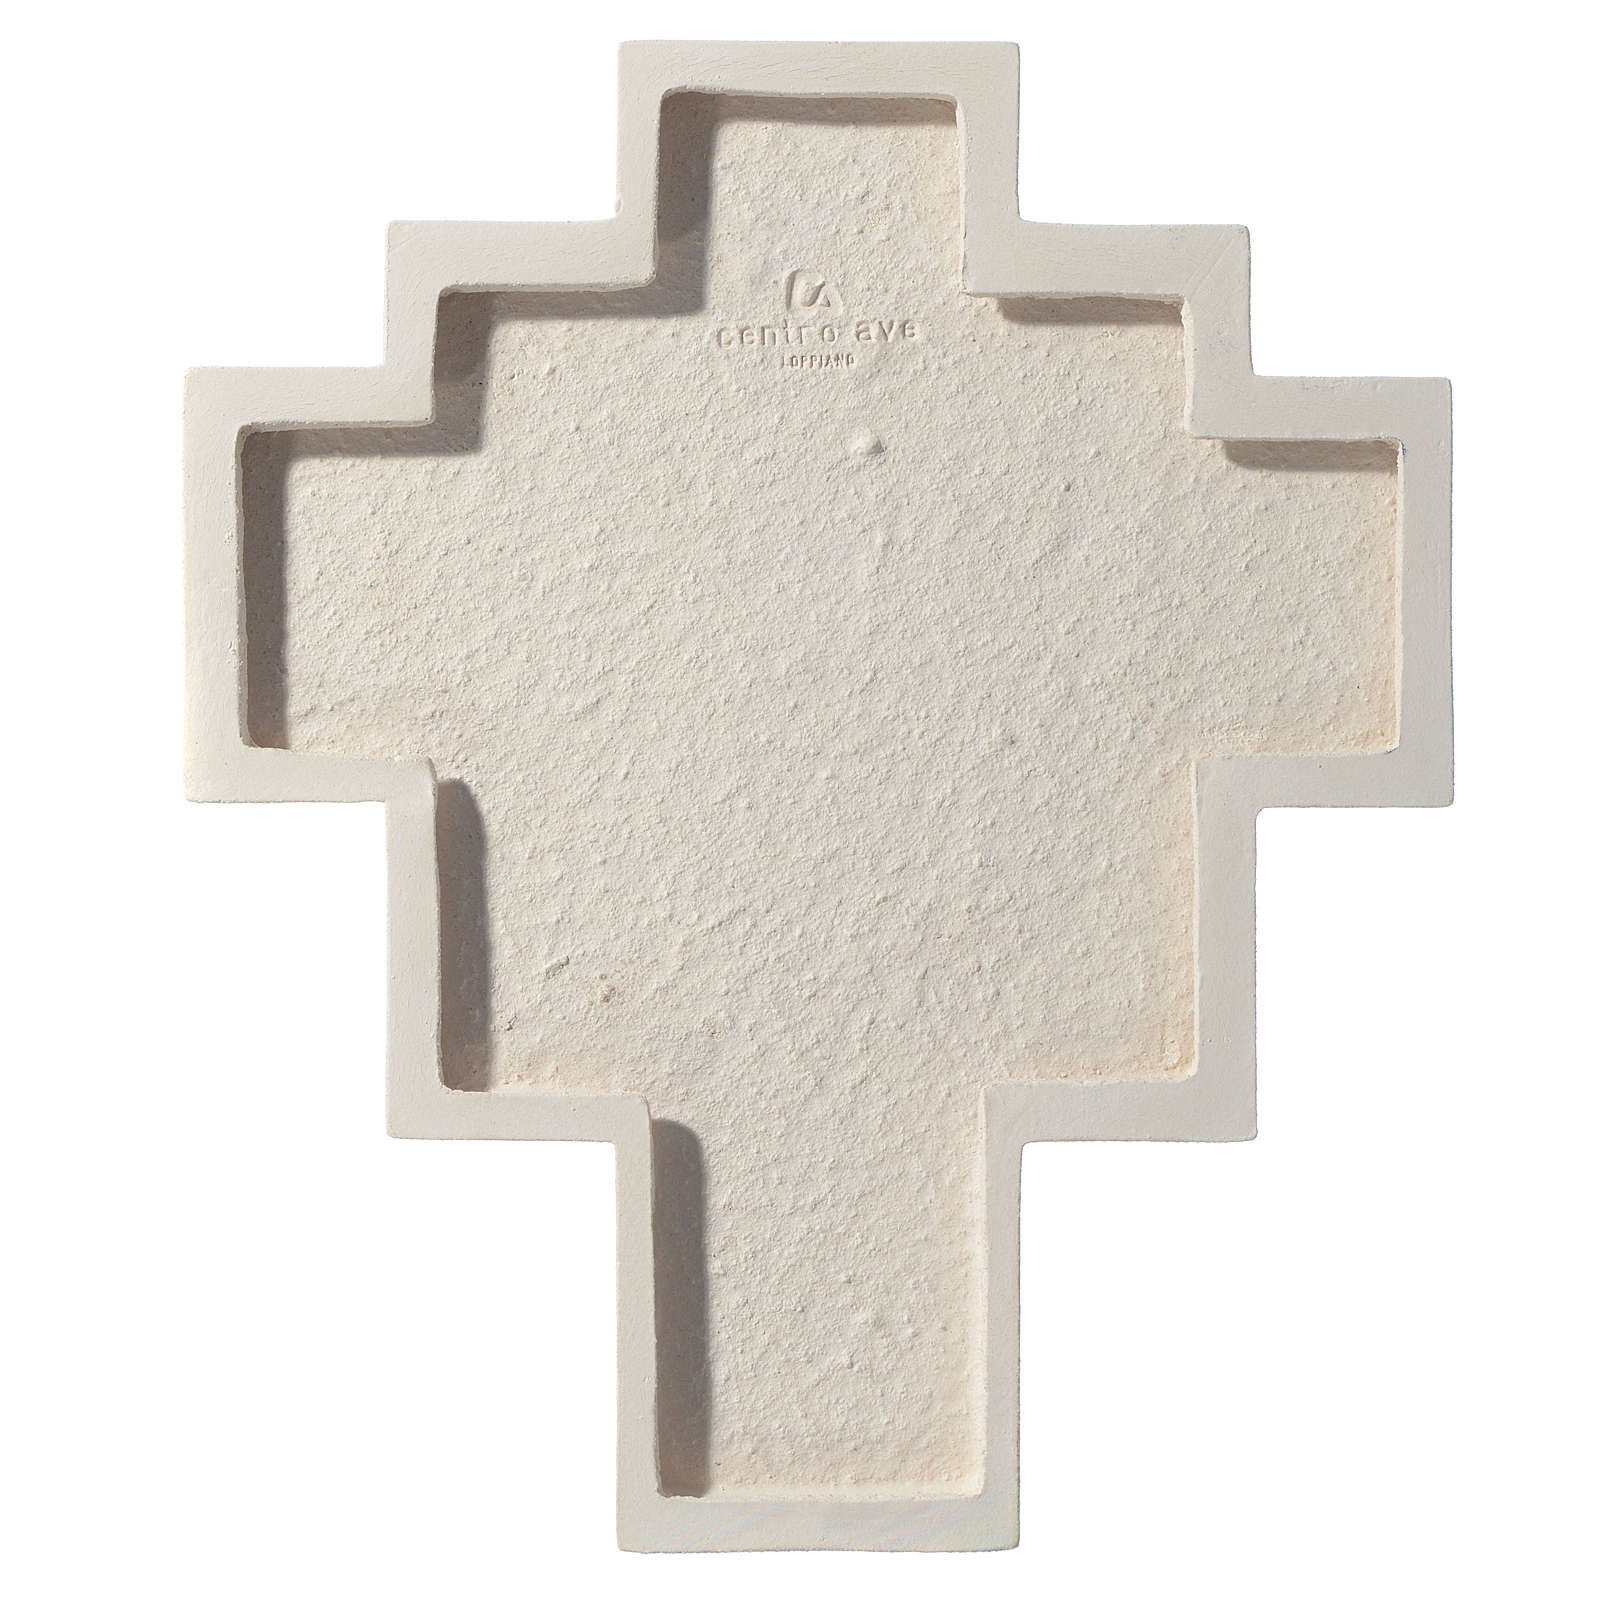 Iris cross by Ceramica Centro Ave, amaranth 27.5cm 4